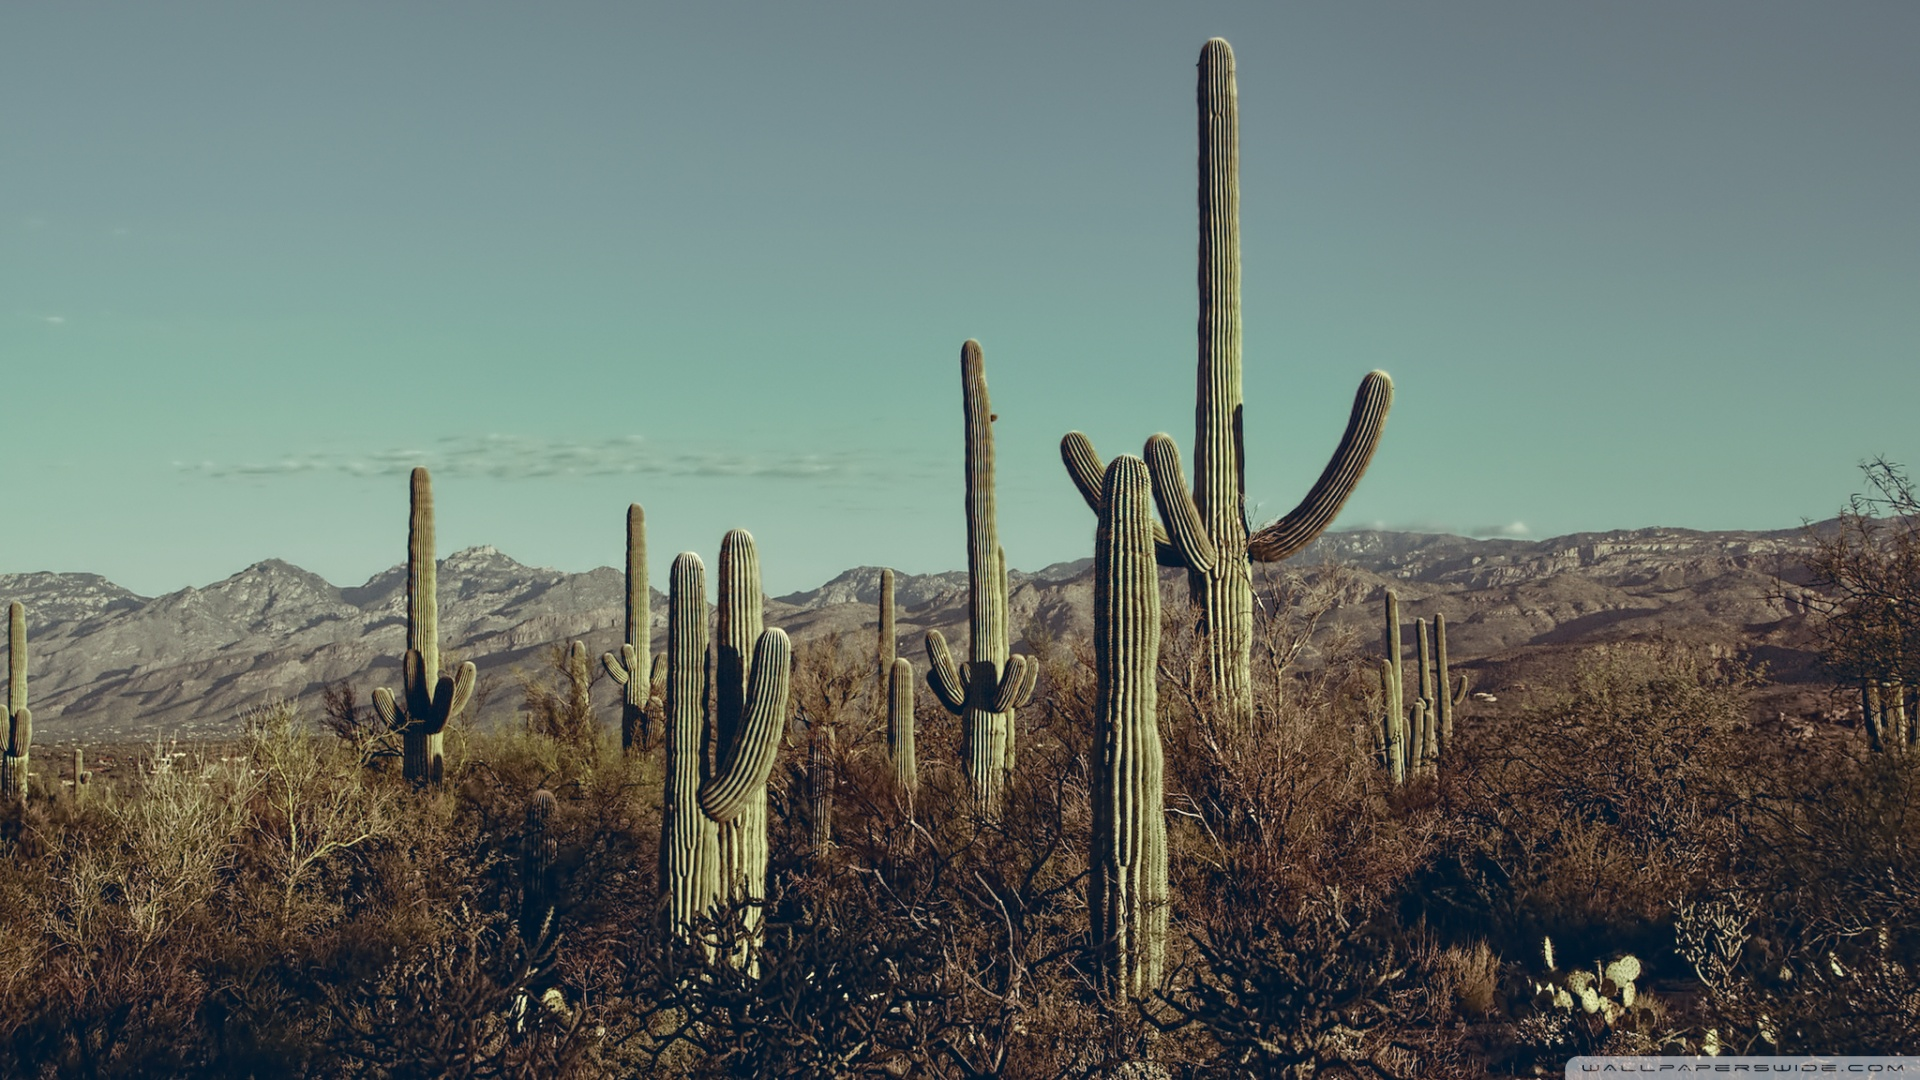 Saguaro National Park East Arizona 4K HD Desktop Wallpaper for 1920x1080